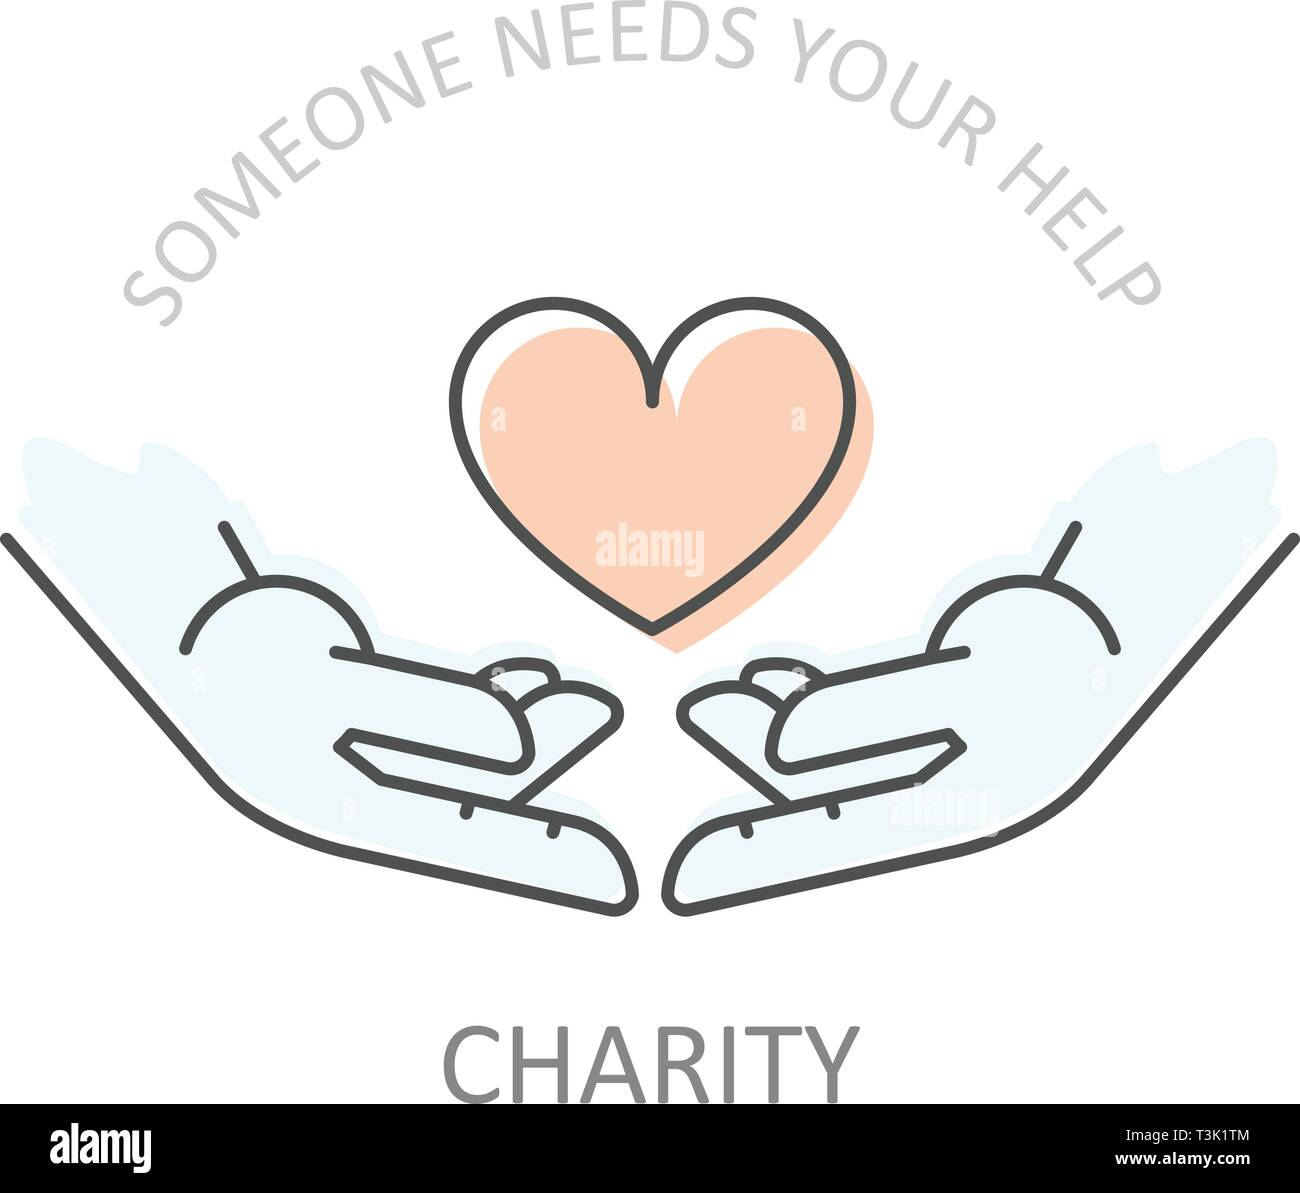 Hands holding heart - charity or philanthropy poster, donation help concept Stock Vector